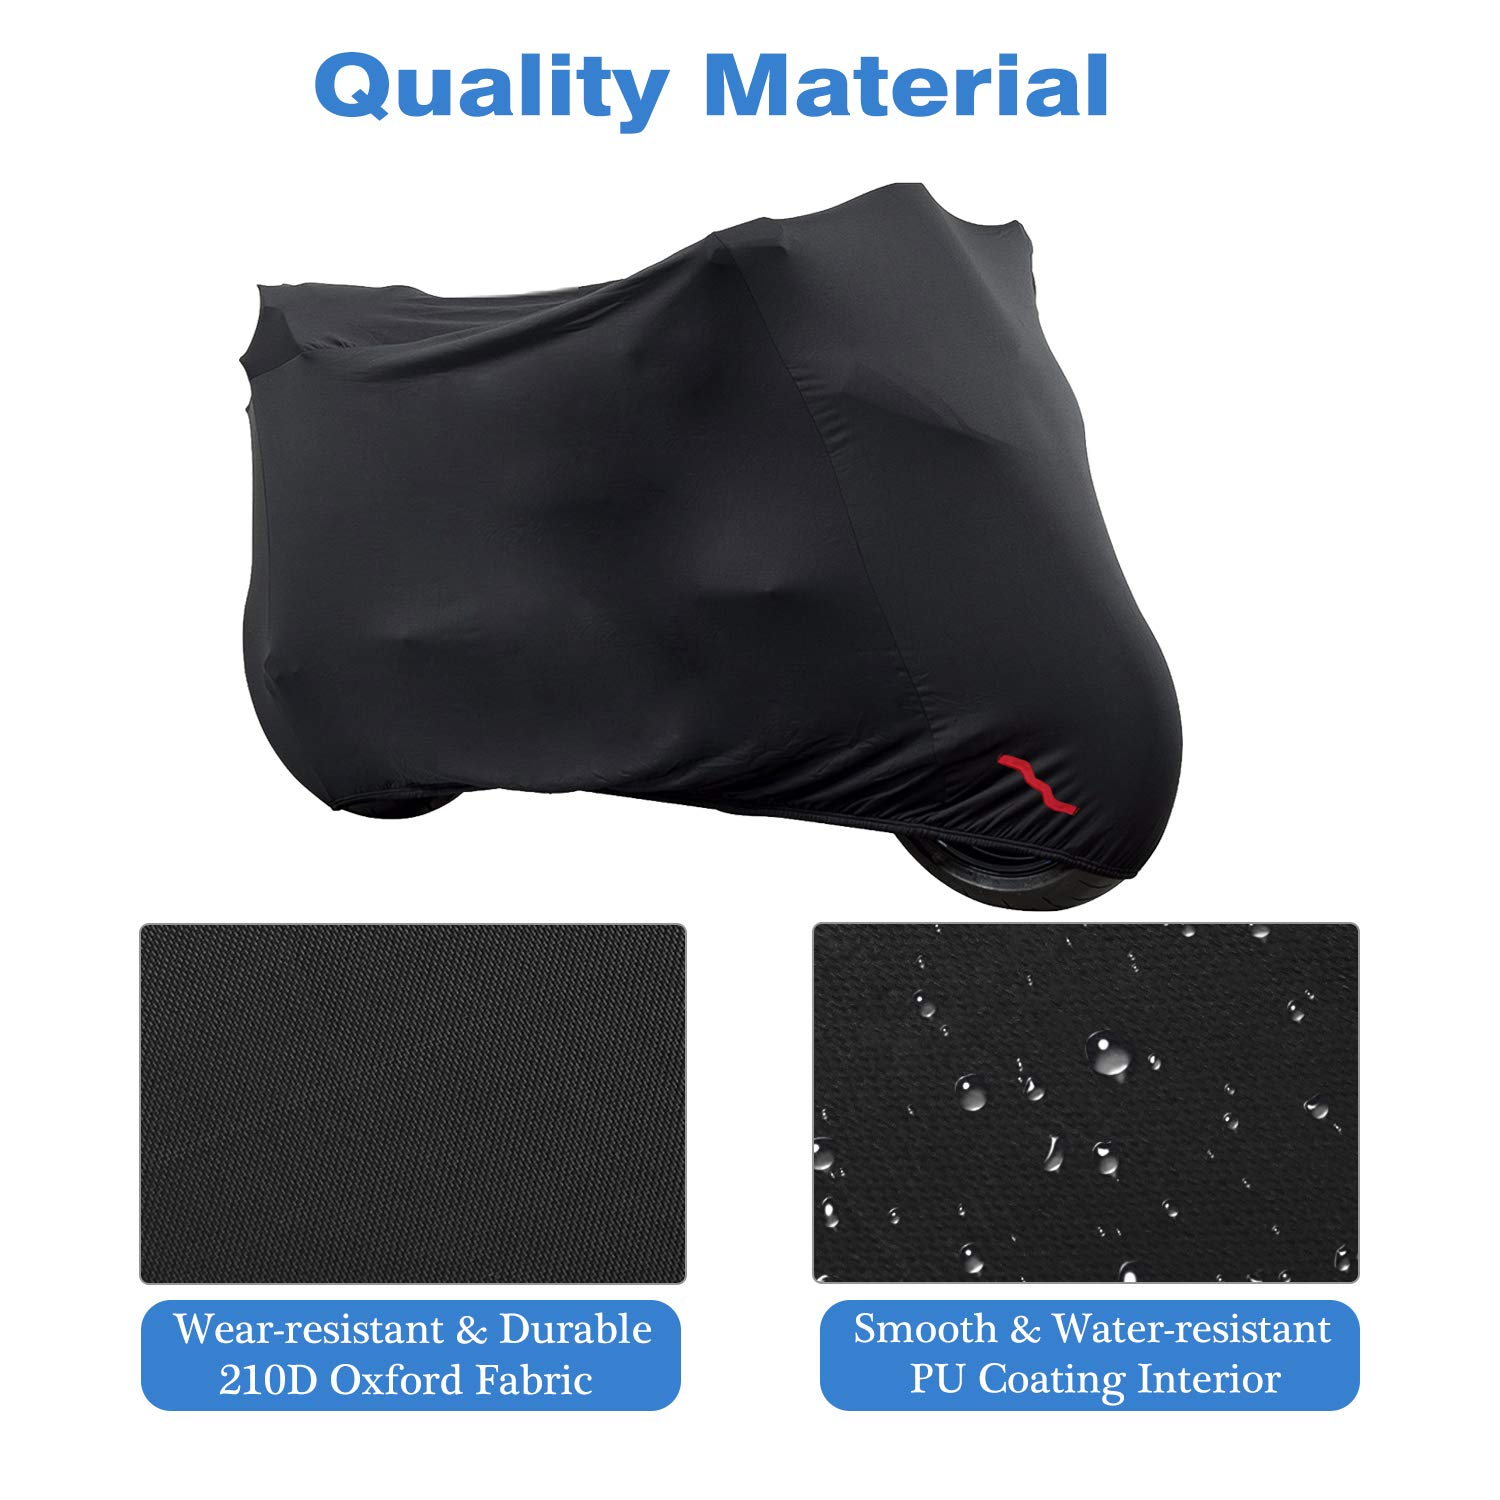 104 inch Universal Dustproof Waterproof Protective Cover 210D Oxford Cloth Sun Protection Case for Motorbike Outdoor Use MoKo Motorcycle Cover Black